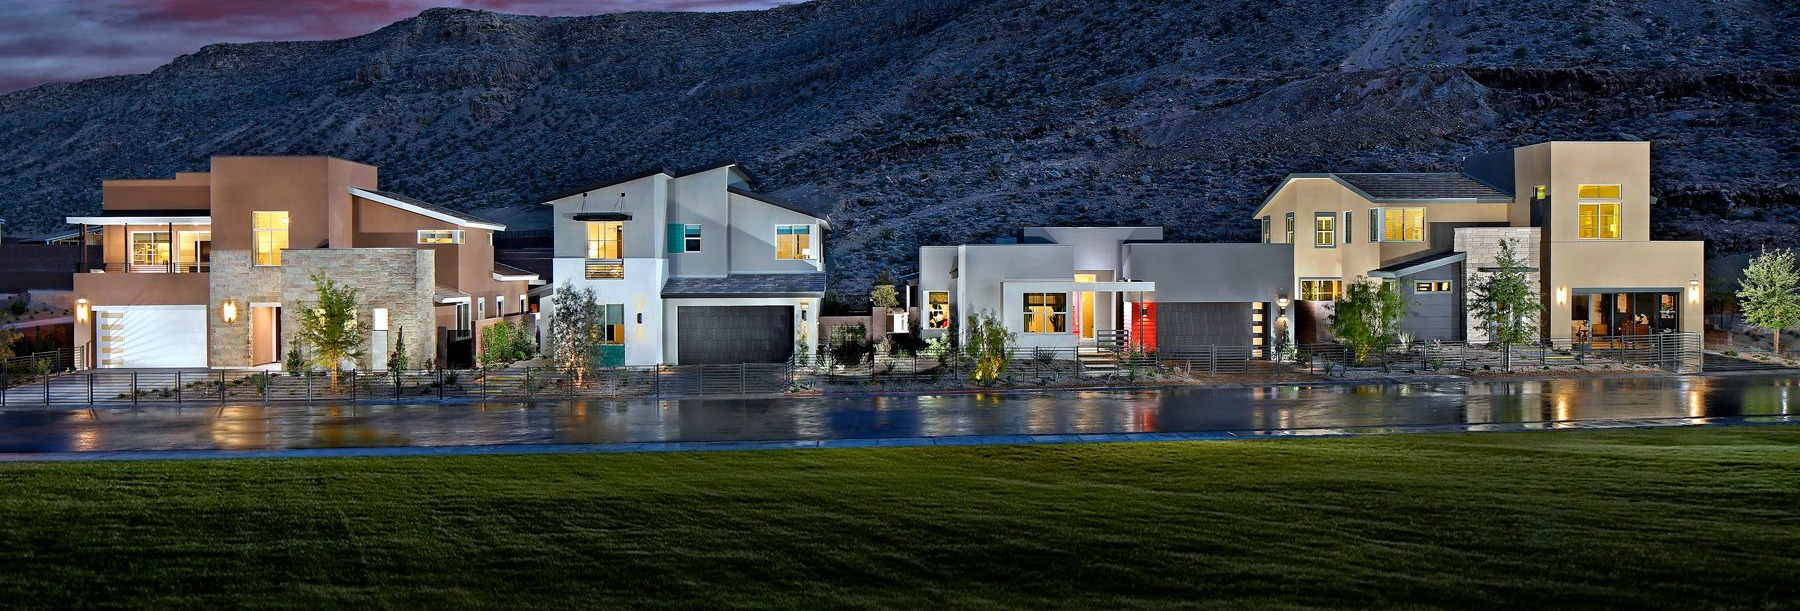 Summerlin Homes